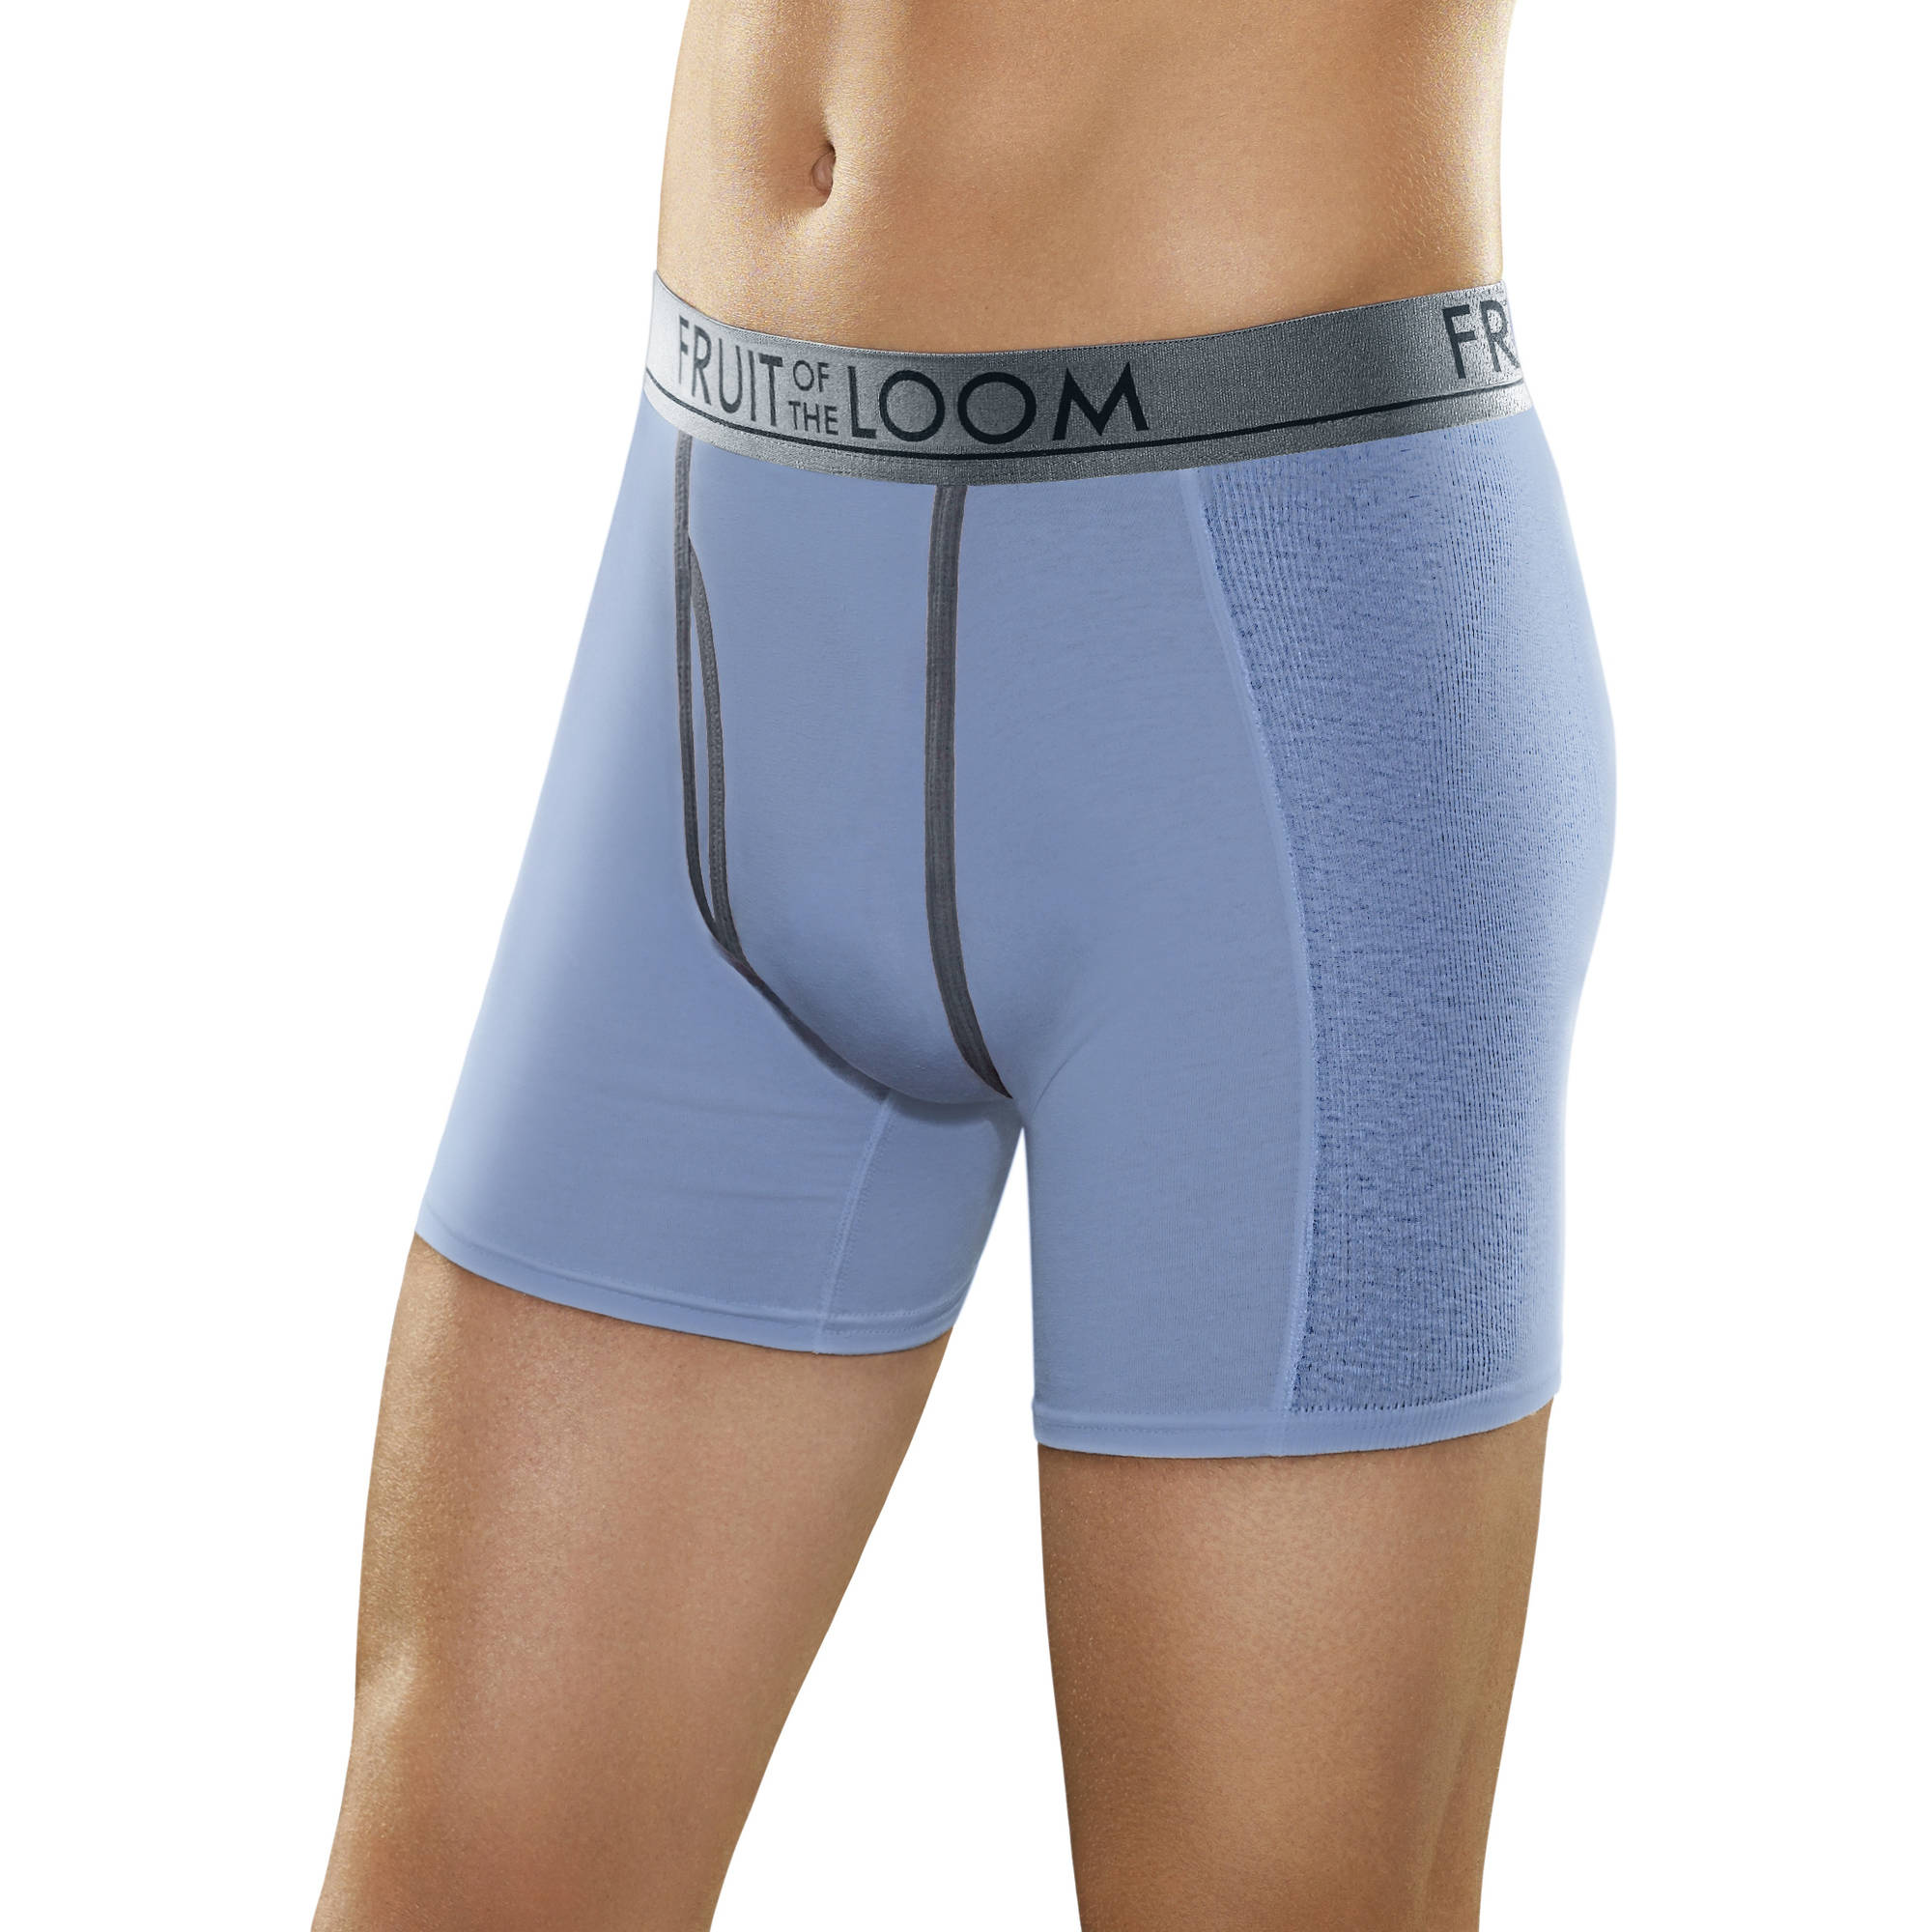 Fruit of the Loom Big Men's Ultra Flex Boxer Briefs, 2XL, 3 Pack by Fruit of the Loom